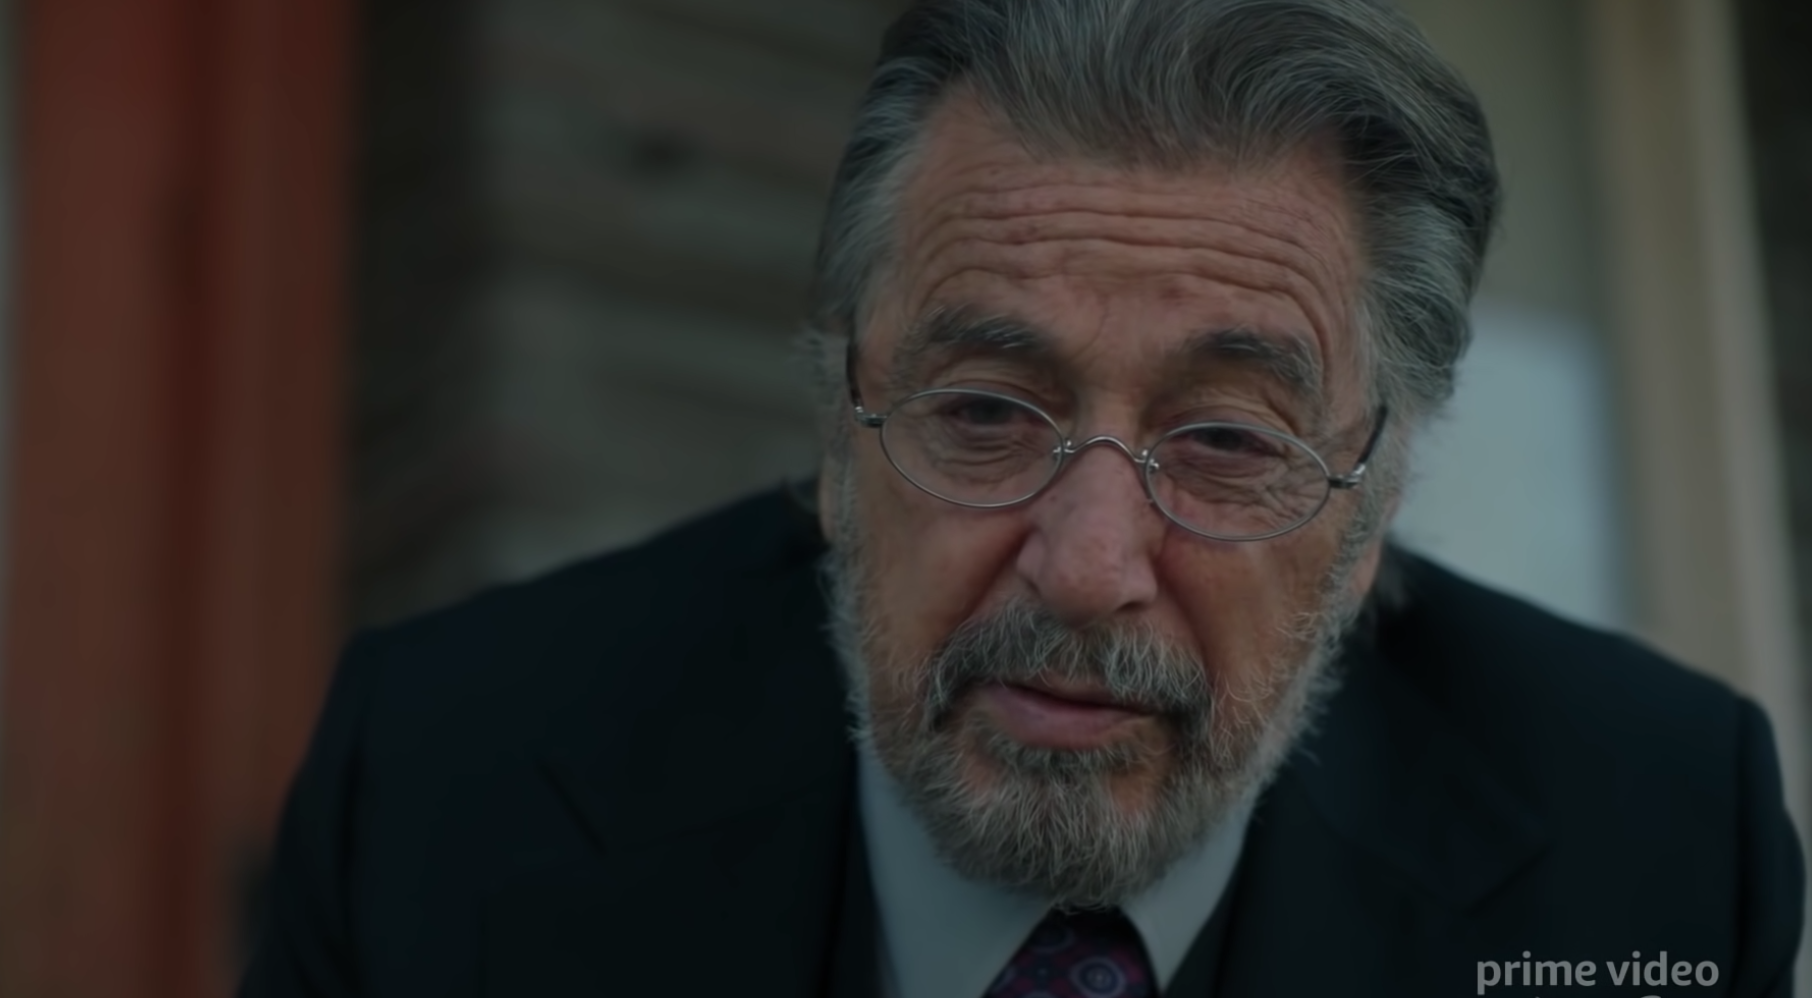 How to watch Al Pacino in 'Hunters,' which premieres this weekend